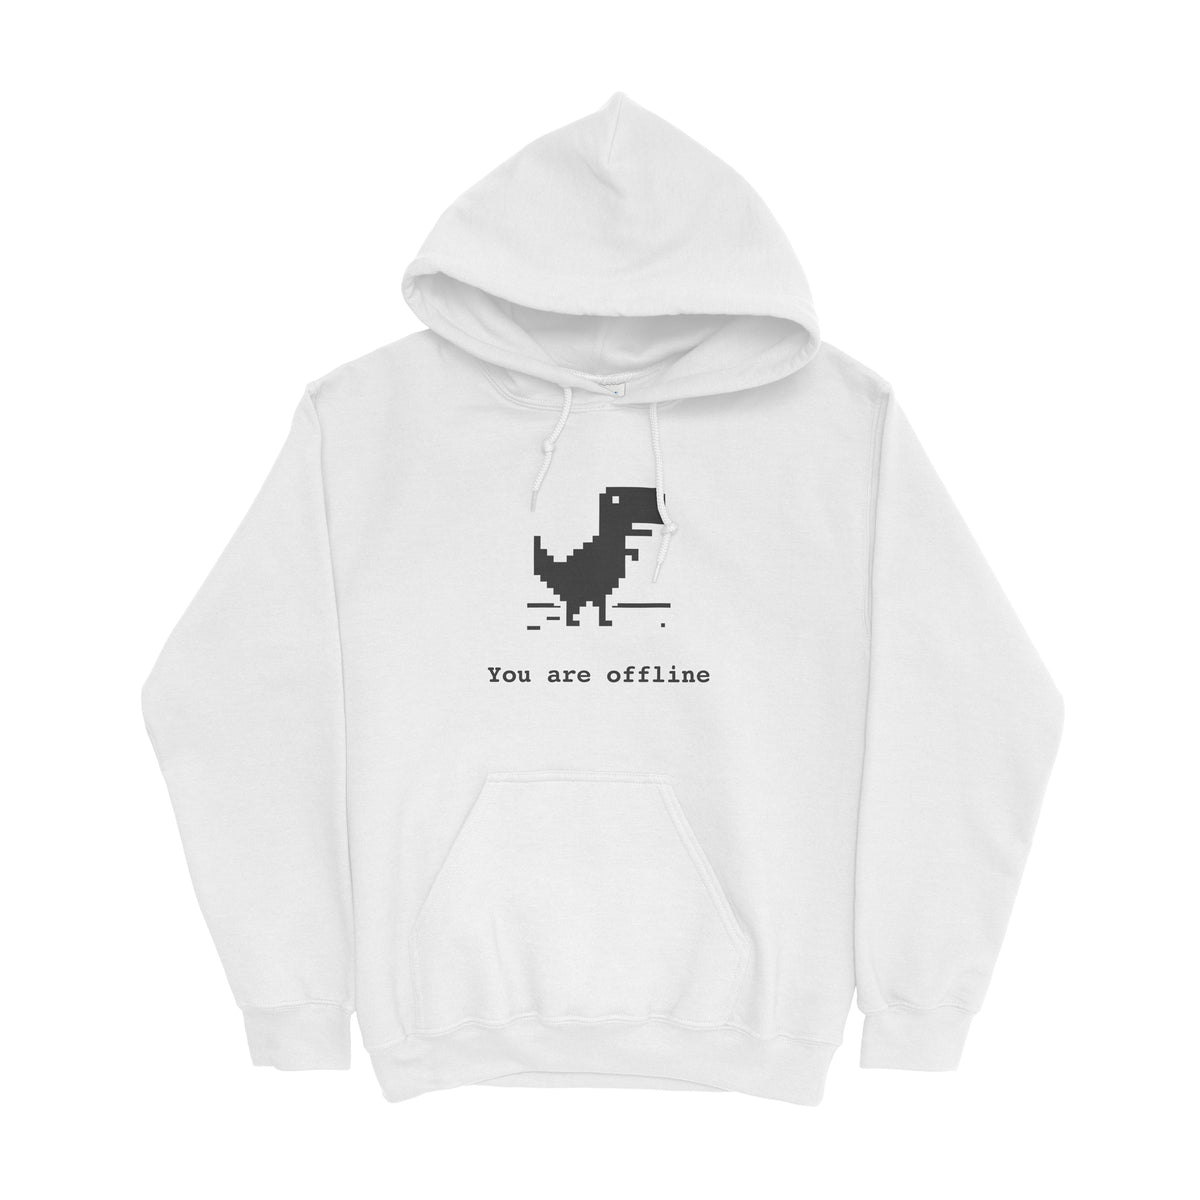 You Are Offline Hoodie for Developers